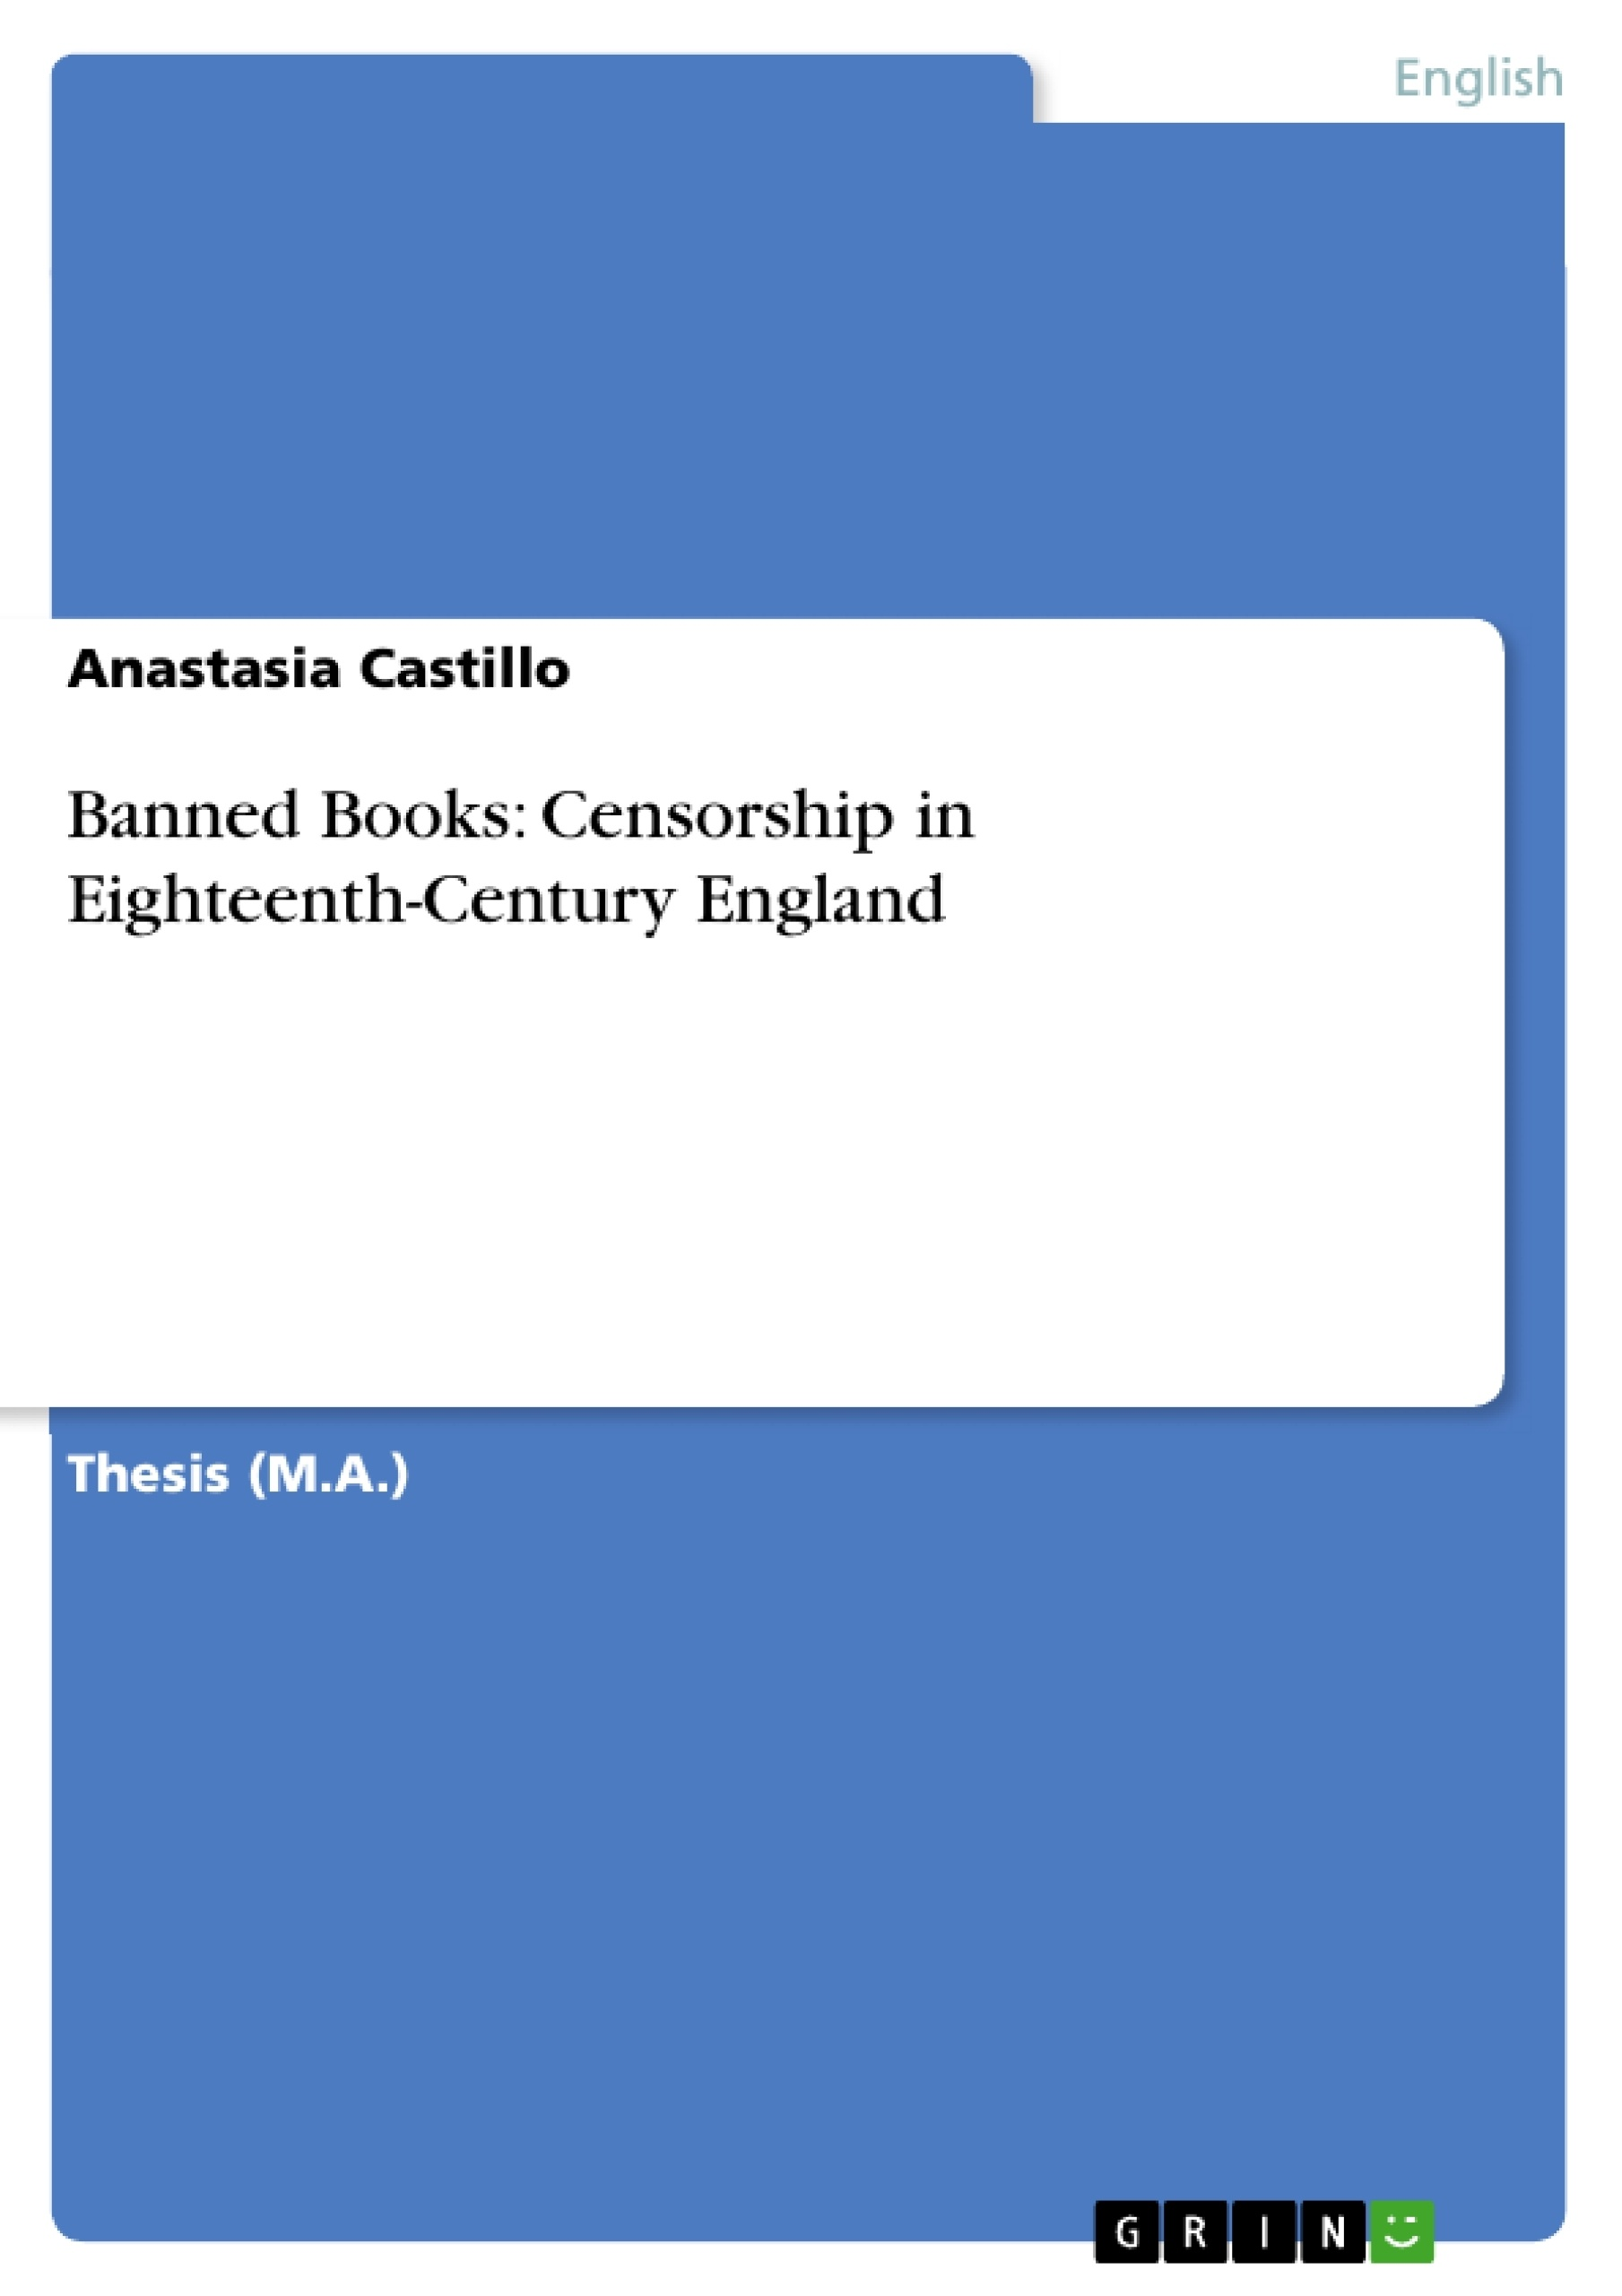 banned books censorship in eighteenth century england publish banned books censorship in eighteenth century england publish your master s thesis bachelor s thesis essay or term paper